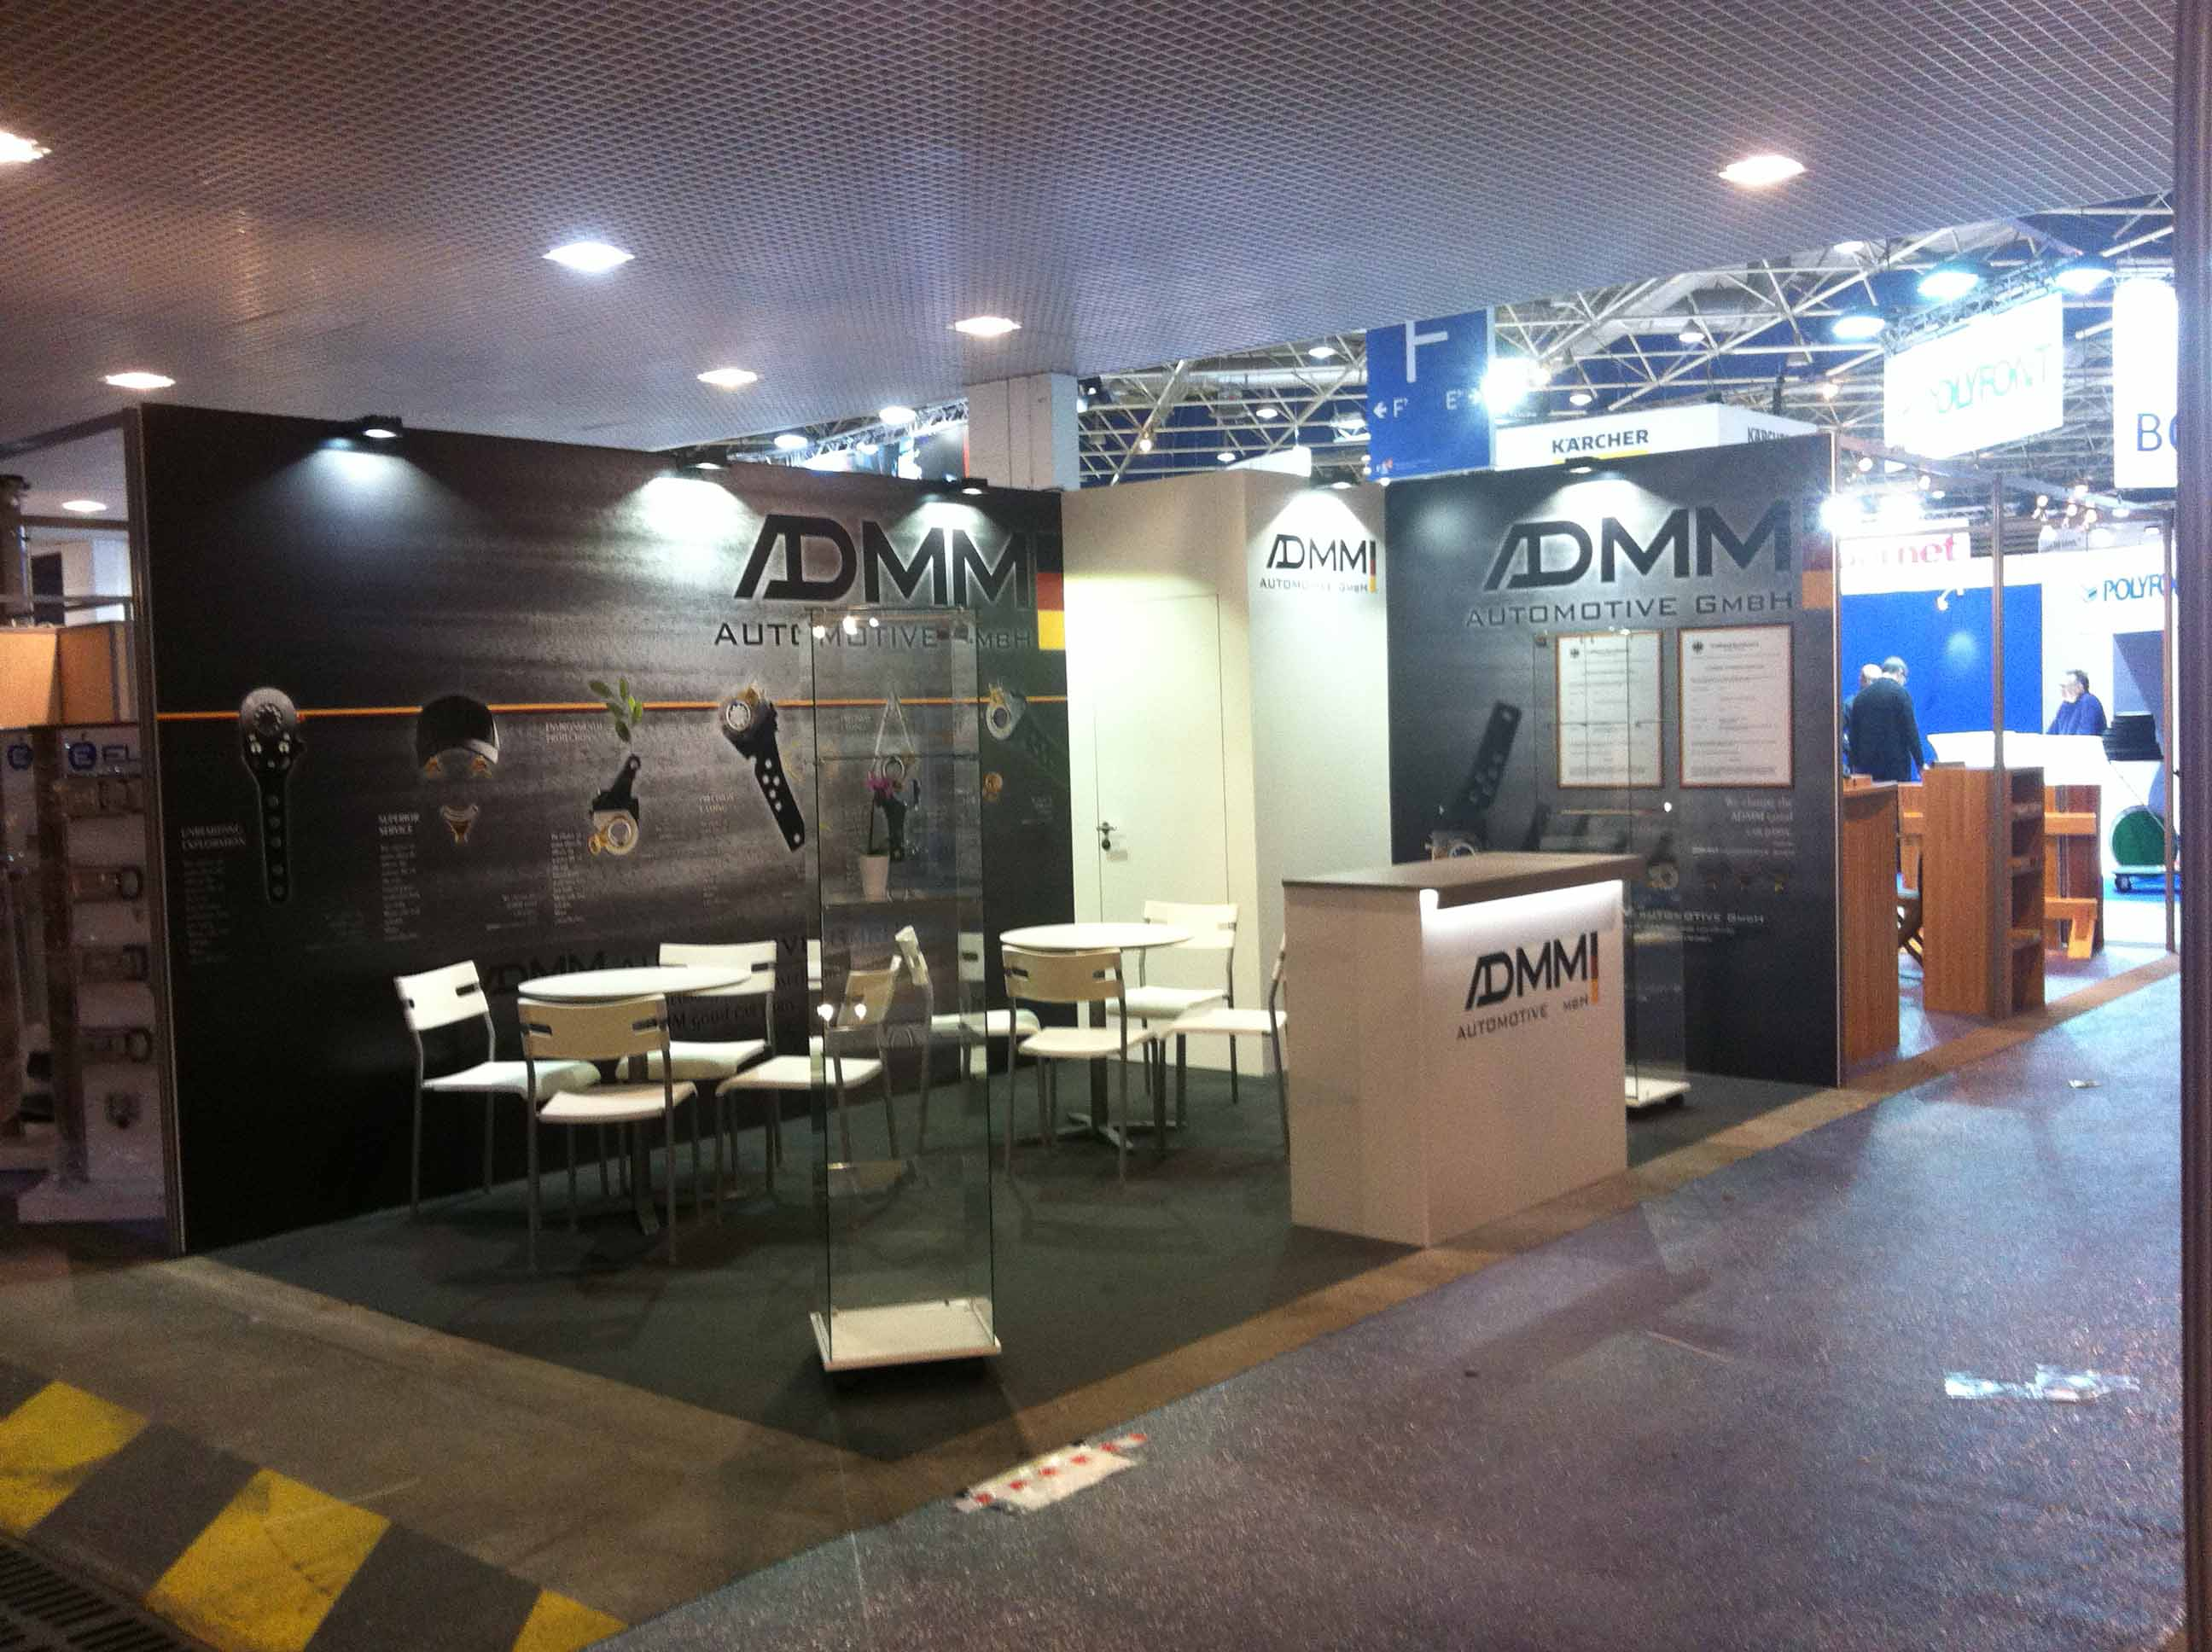 Admm solutrans 2015 capsule concept for Standiste lyon